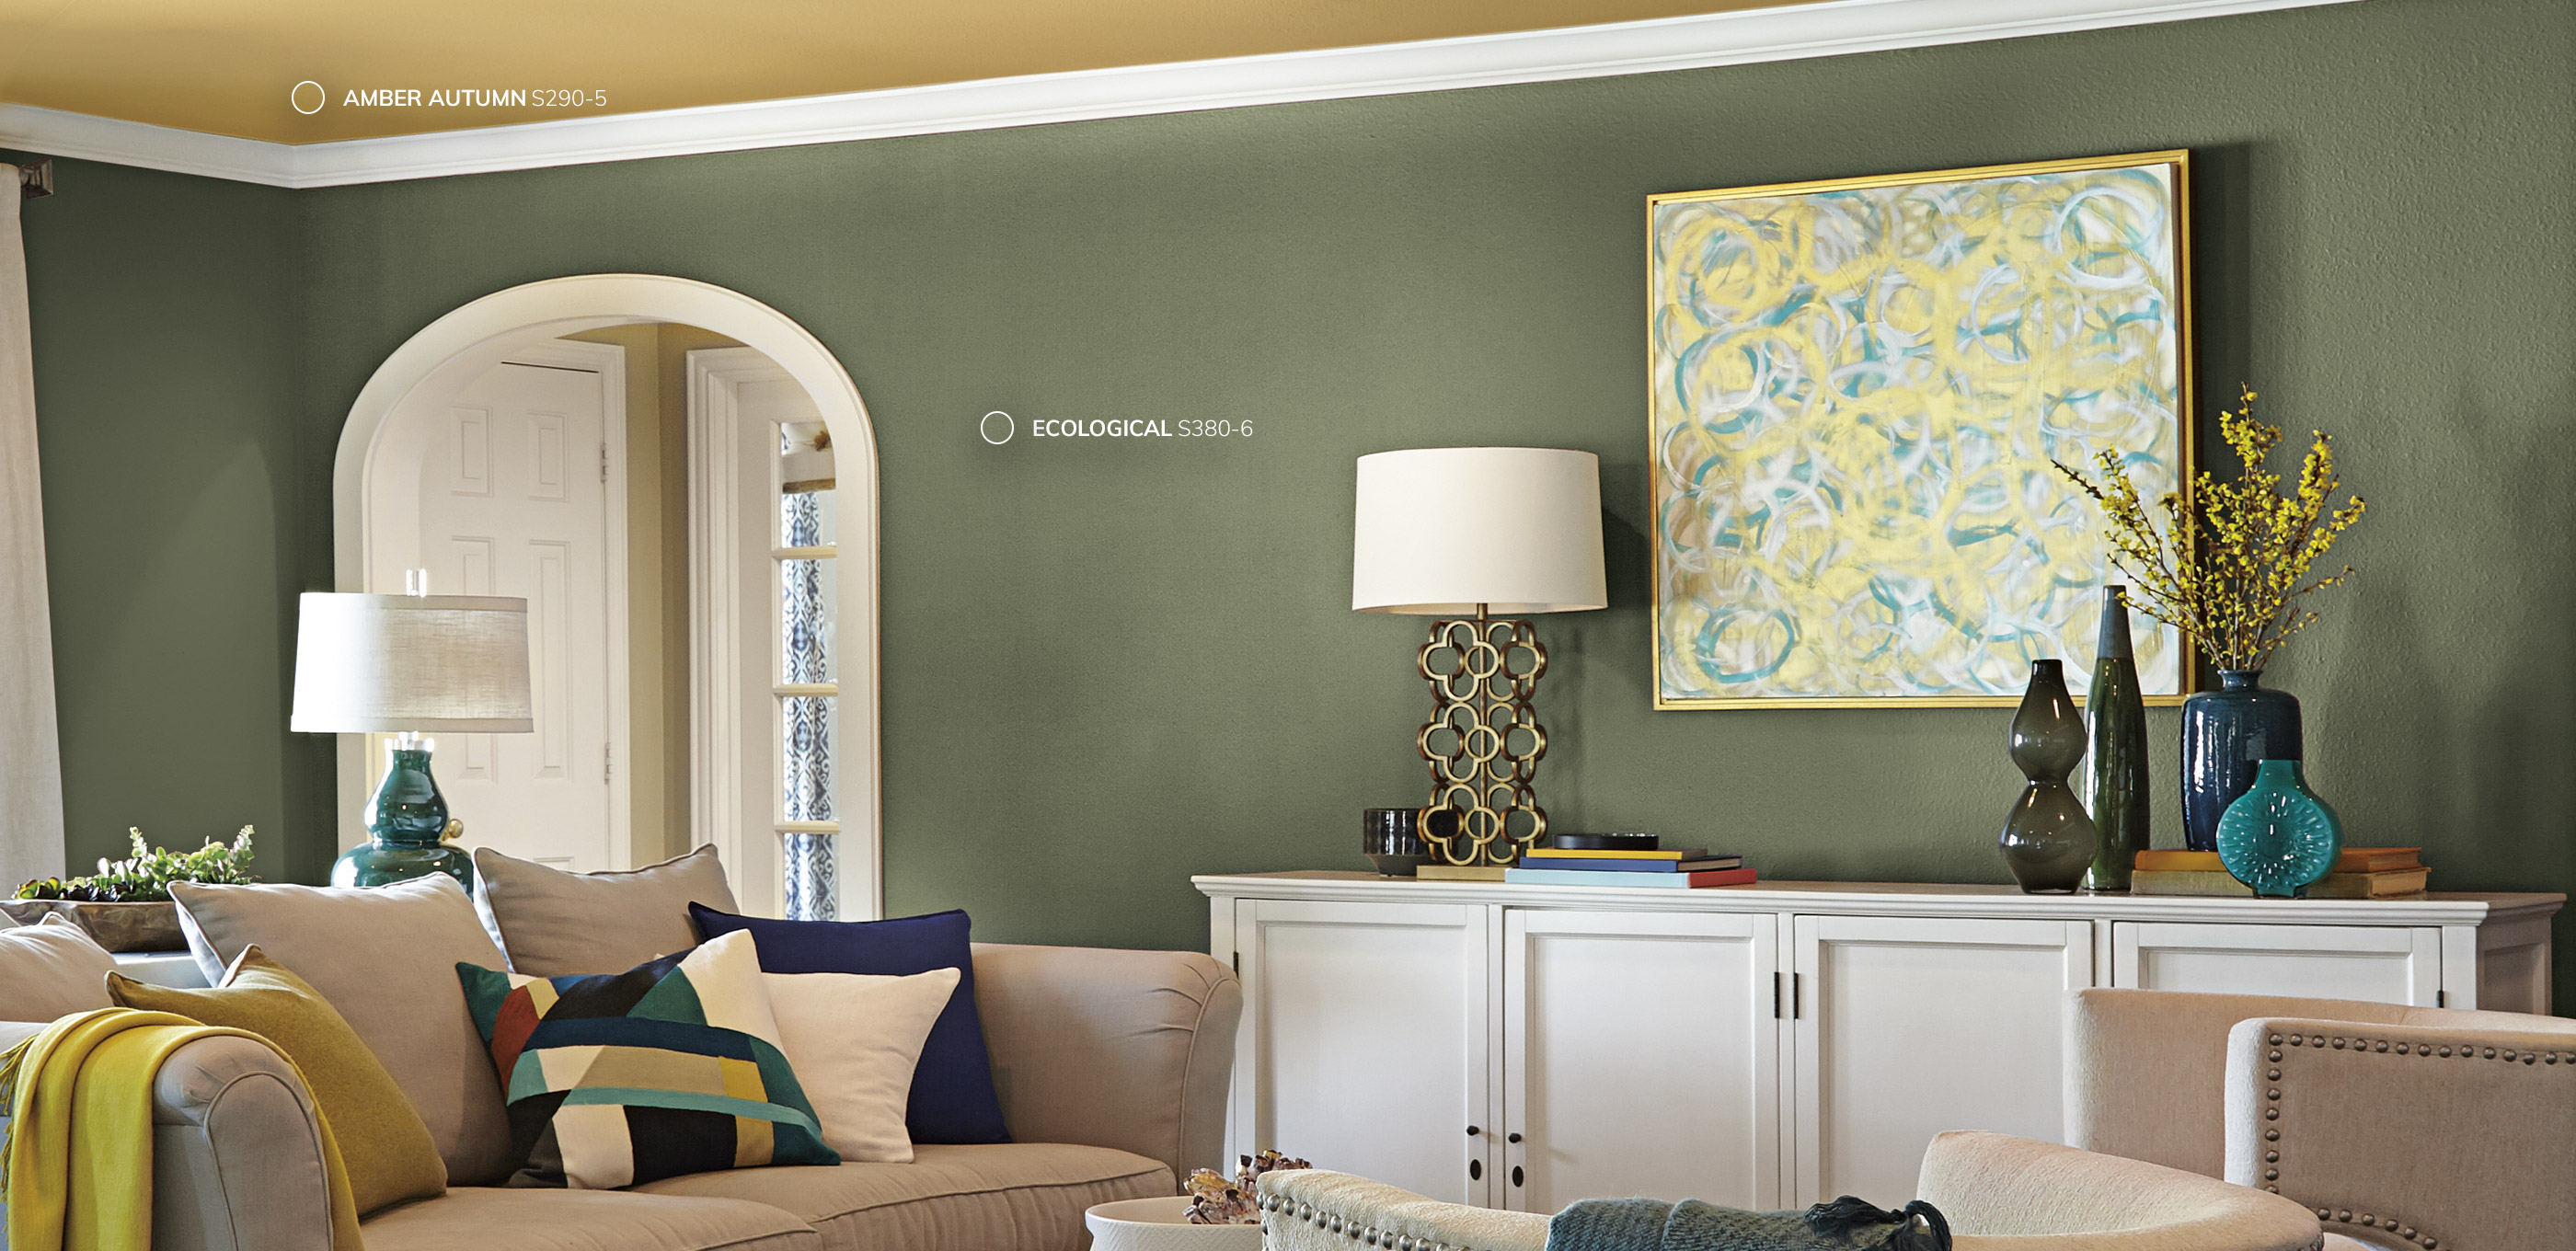 Inspired Curation Color Palette 2019 Color Trends Behr Paint